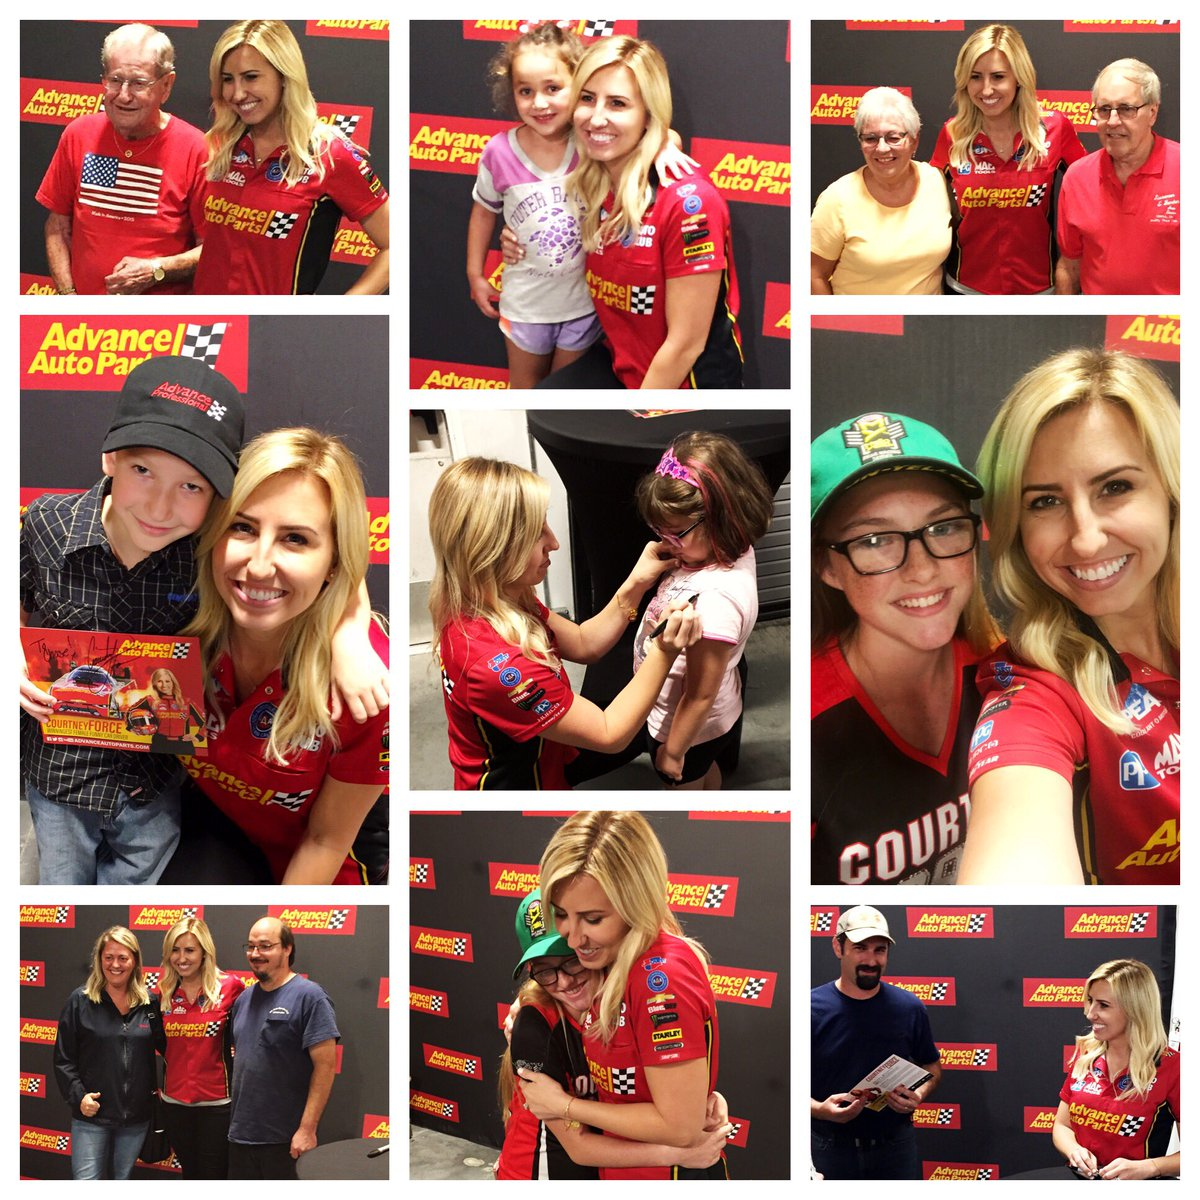 Such a fun night at @AdvanceAuto! Thanks for coming out! Loved meeting you all! What a great way to kickoff race 2 of the Countdown!